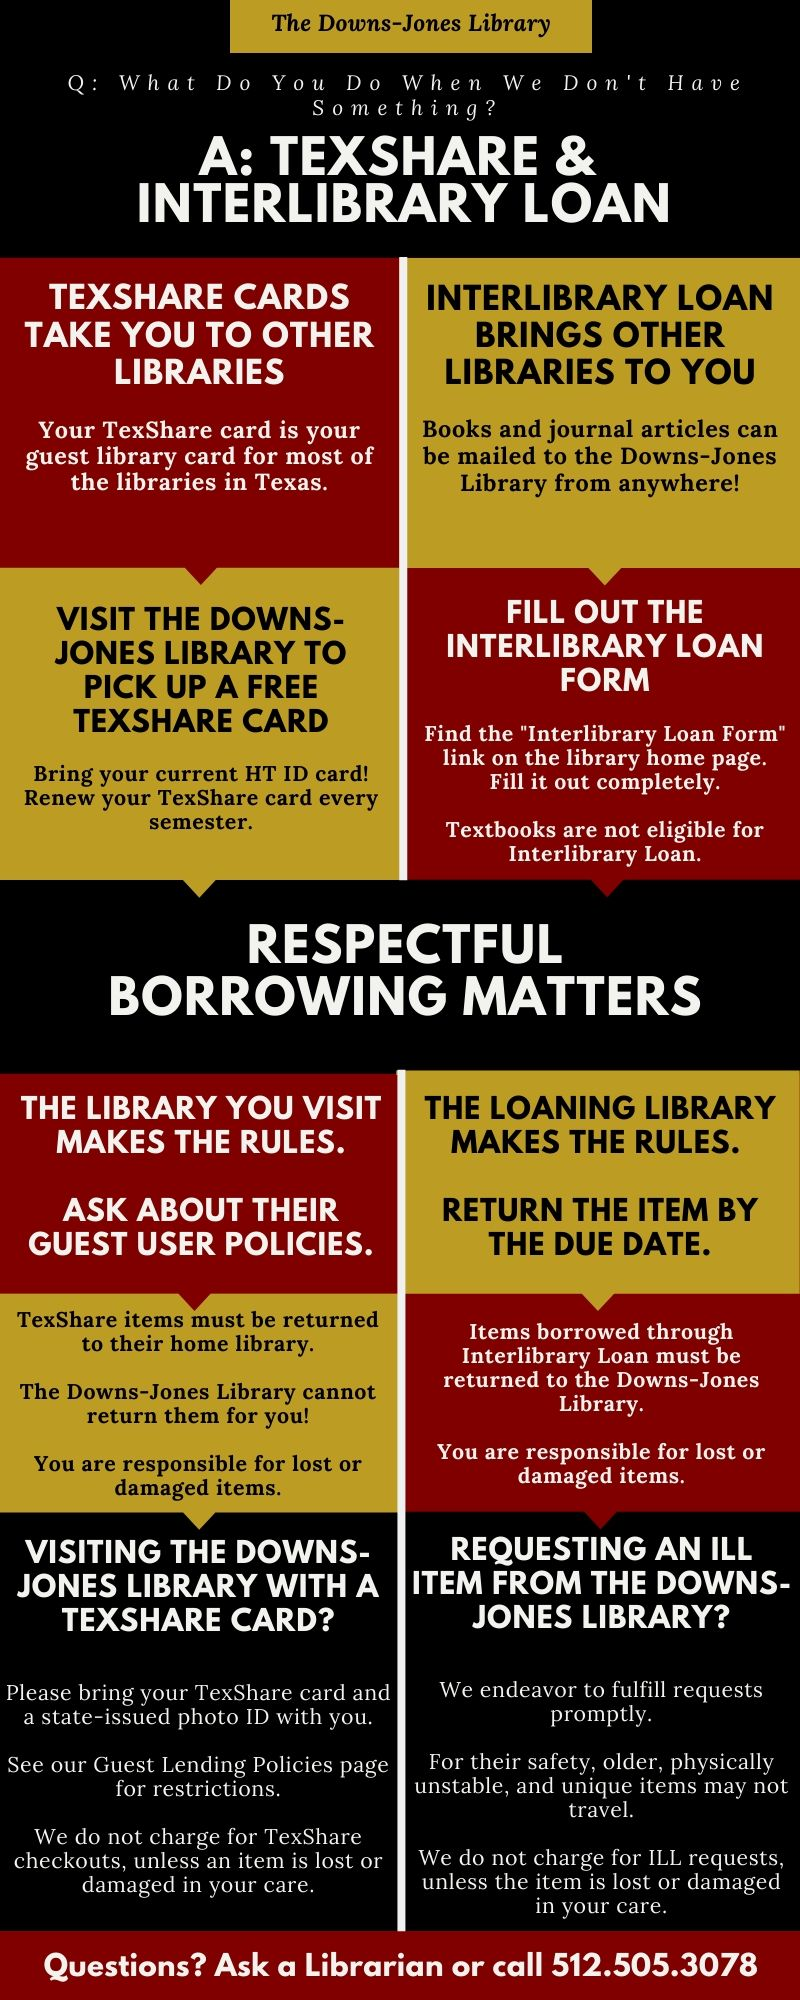 Describes TexShare and Interlibrary Loan procedures. TexShare is a guest library card program that allows you to visit other libraries, but you have to go there yourself and return items to that library. Interlibrary Loan is a program that brings items to you through email or the postal service, but another library has to be willing to loan them and you have to wait for items to arrive. Both programs are free if no items are damaged, lost, or returned late.